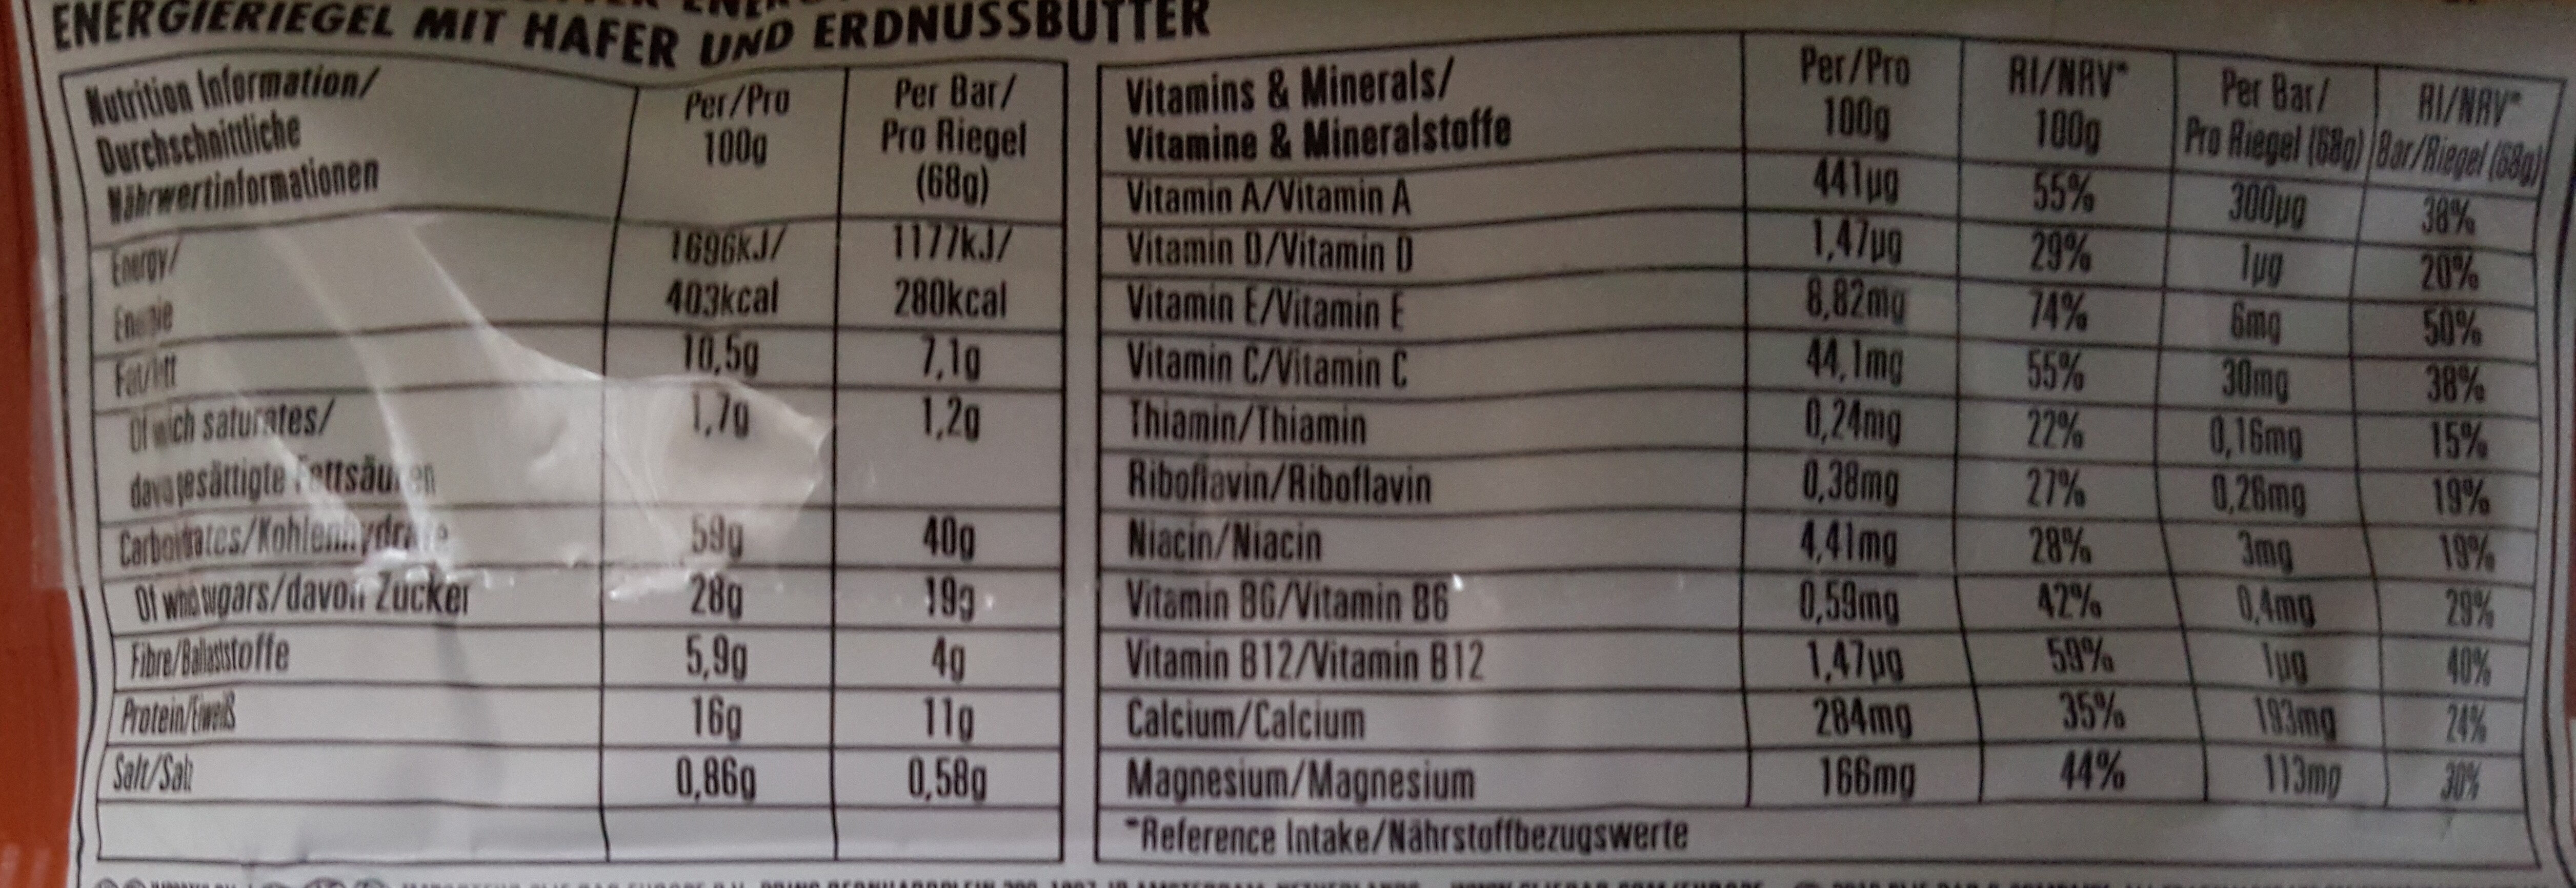 Cliff bar crunchy peanut butter - Nutrition facts